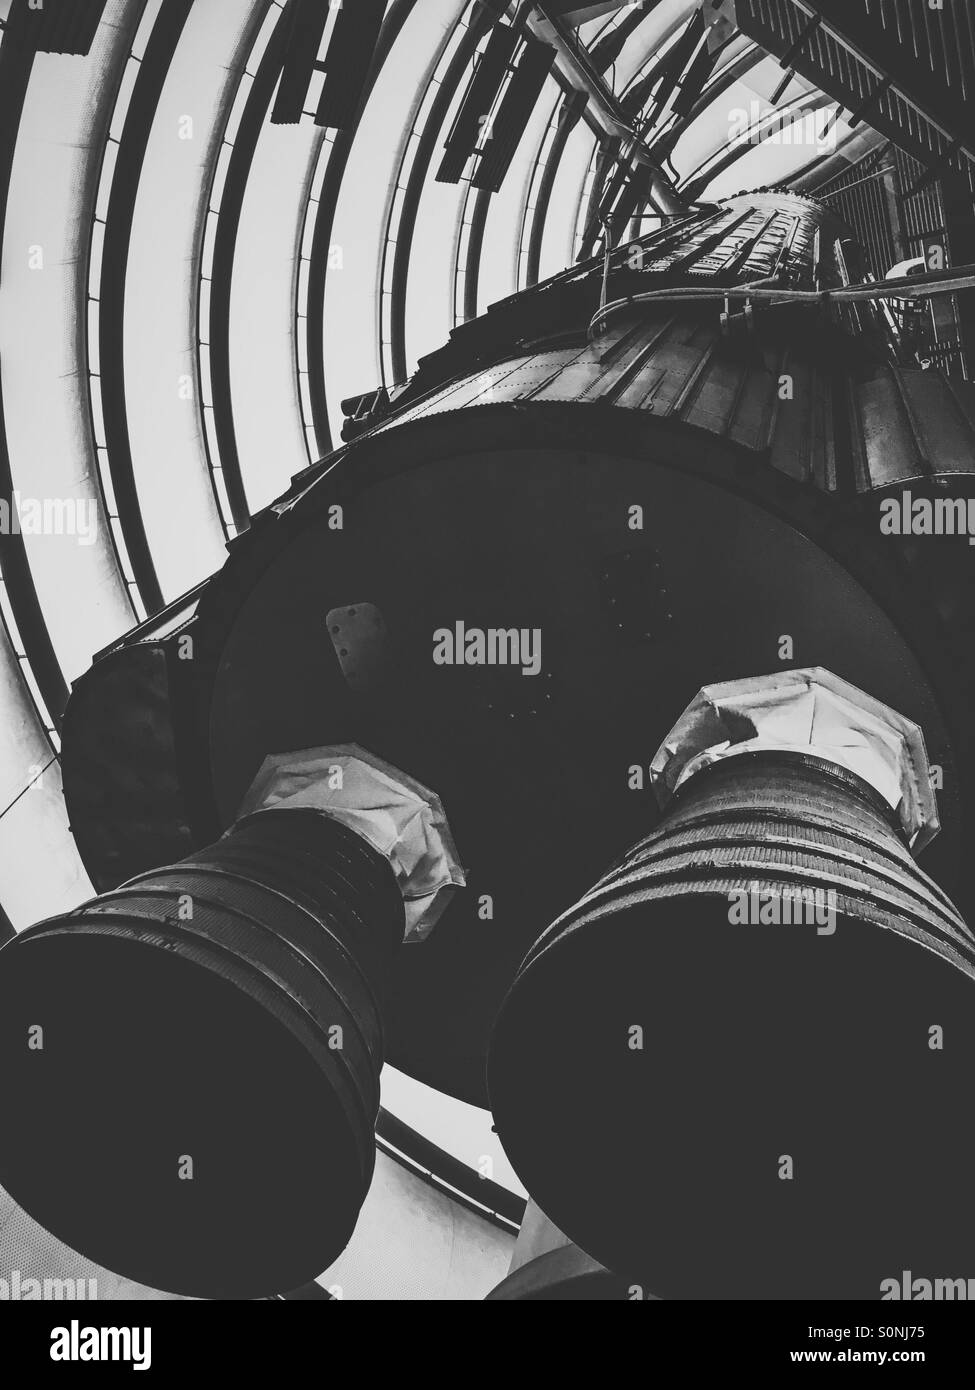 Rocket boosters - Stock Image